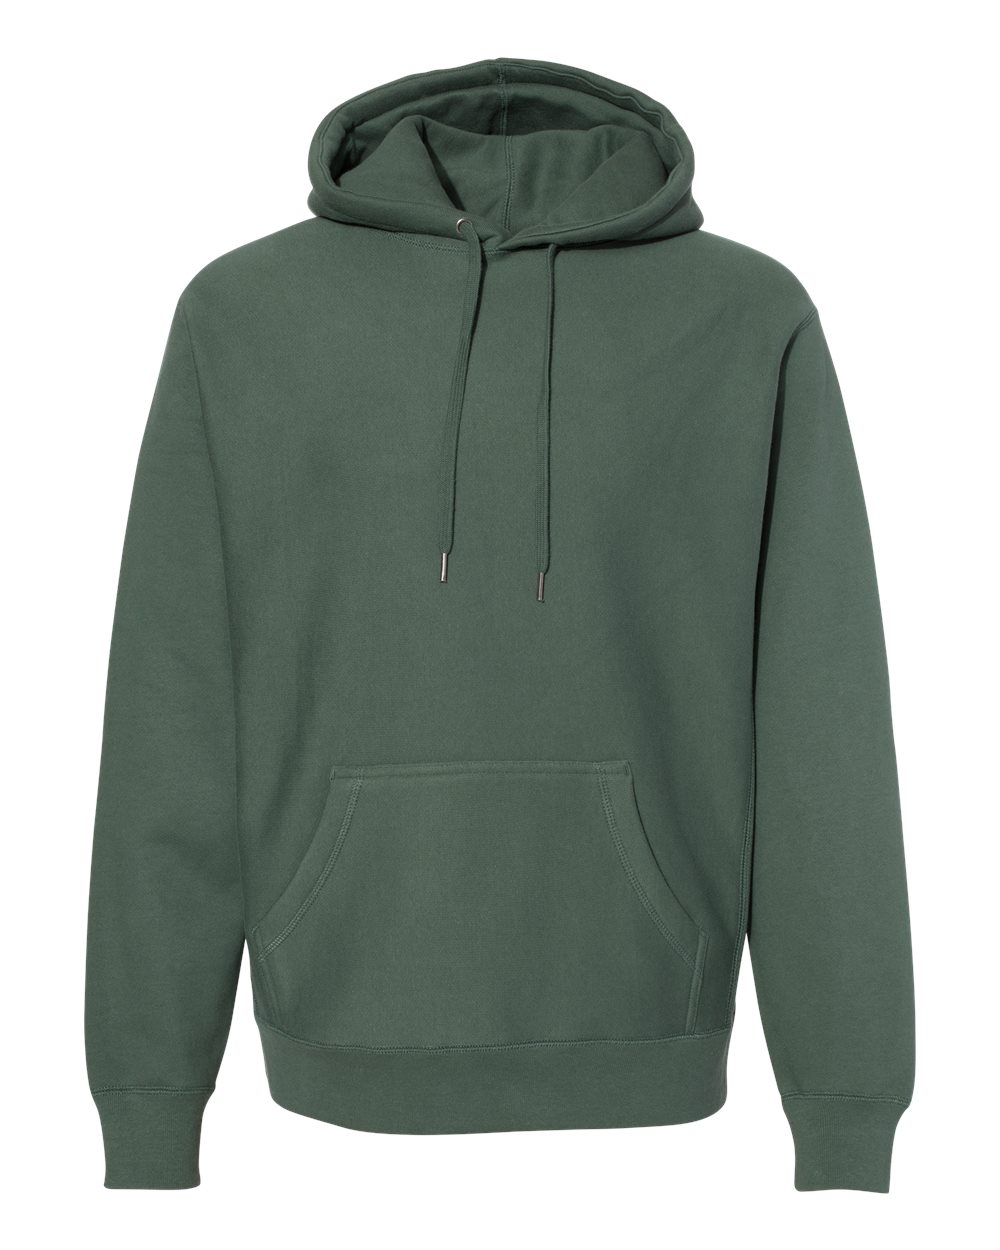 Independent-Trading-Co-Mens-Premium-Heavyweight-Cross-Grain-Hoodie-IND5000P thumbnail 6